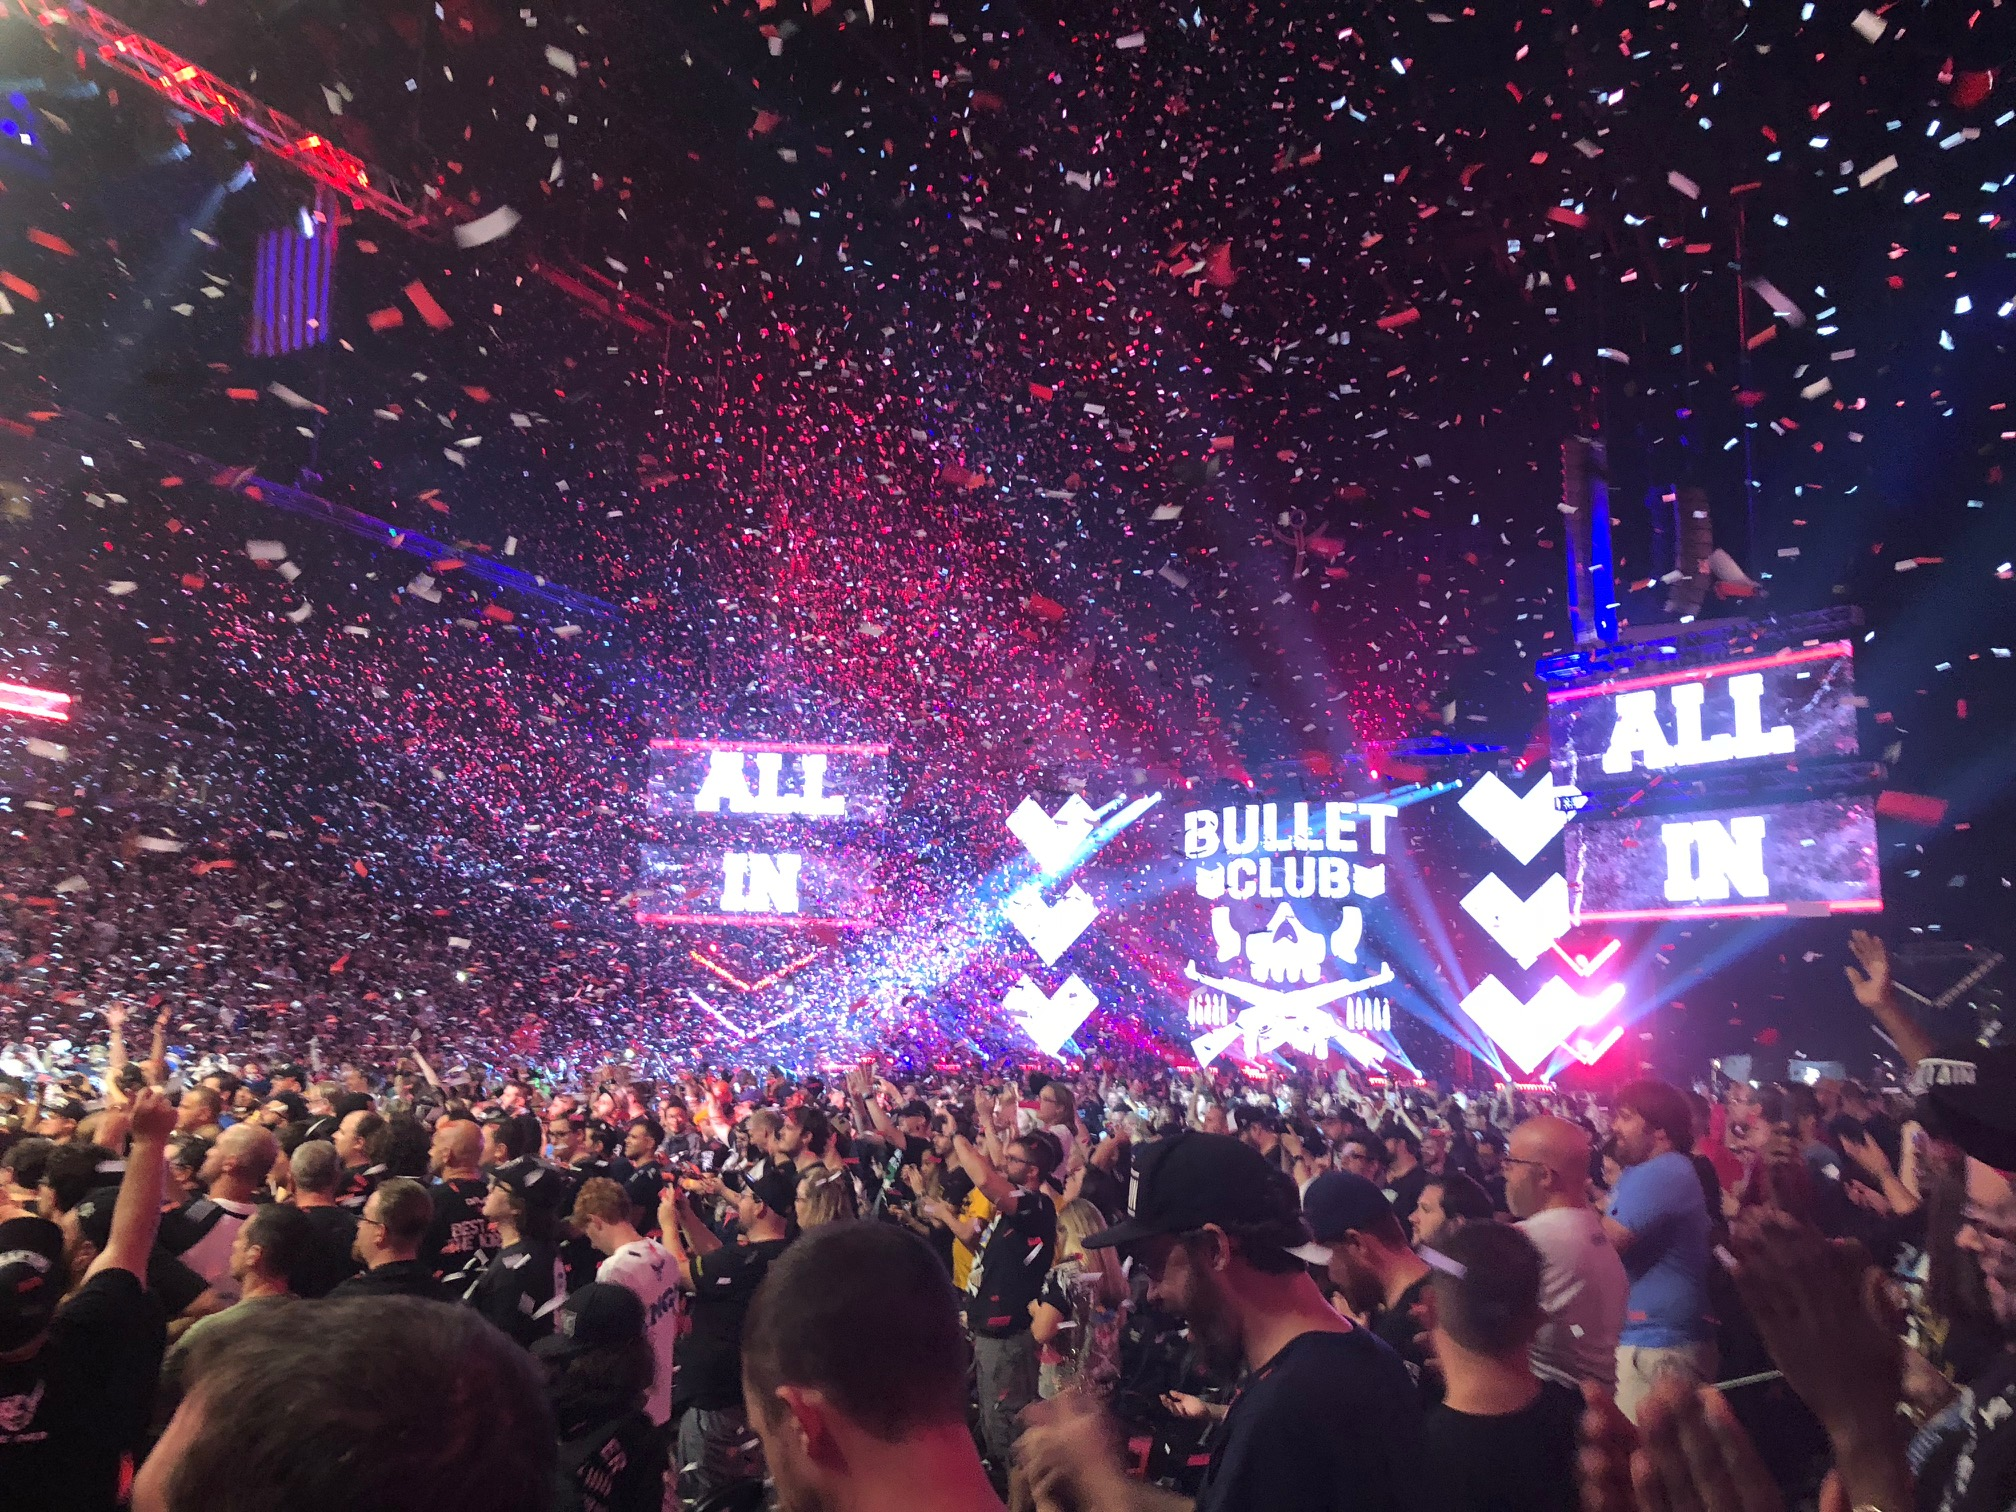 Six takeaways from Saturday's All In wrestling event